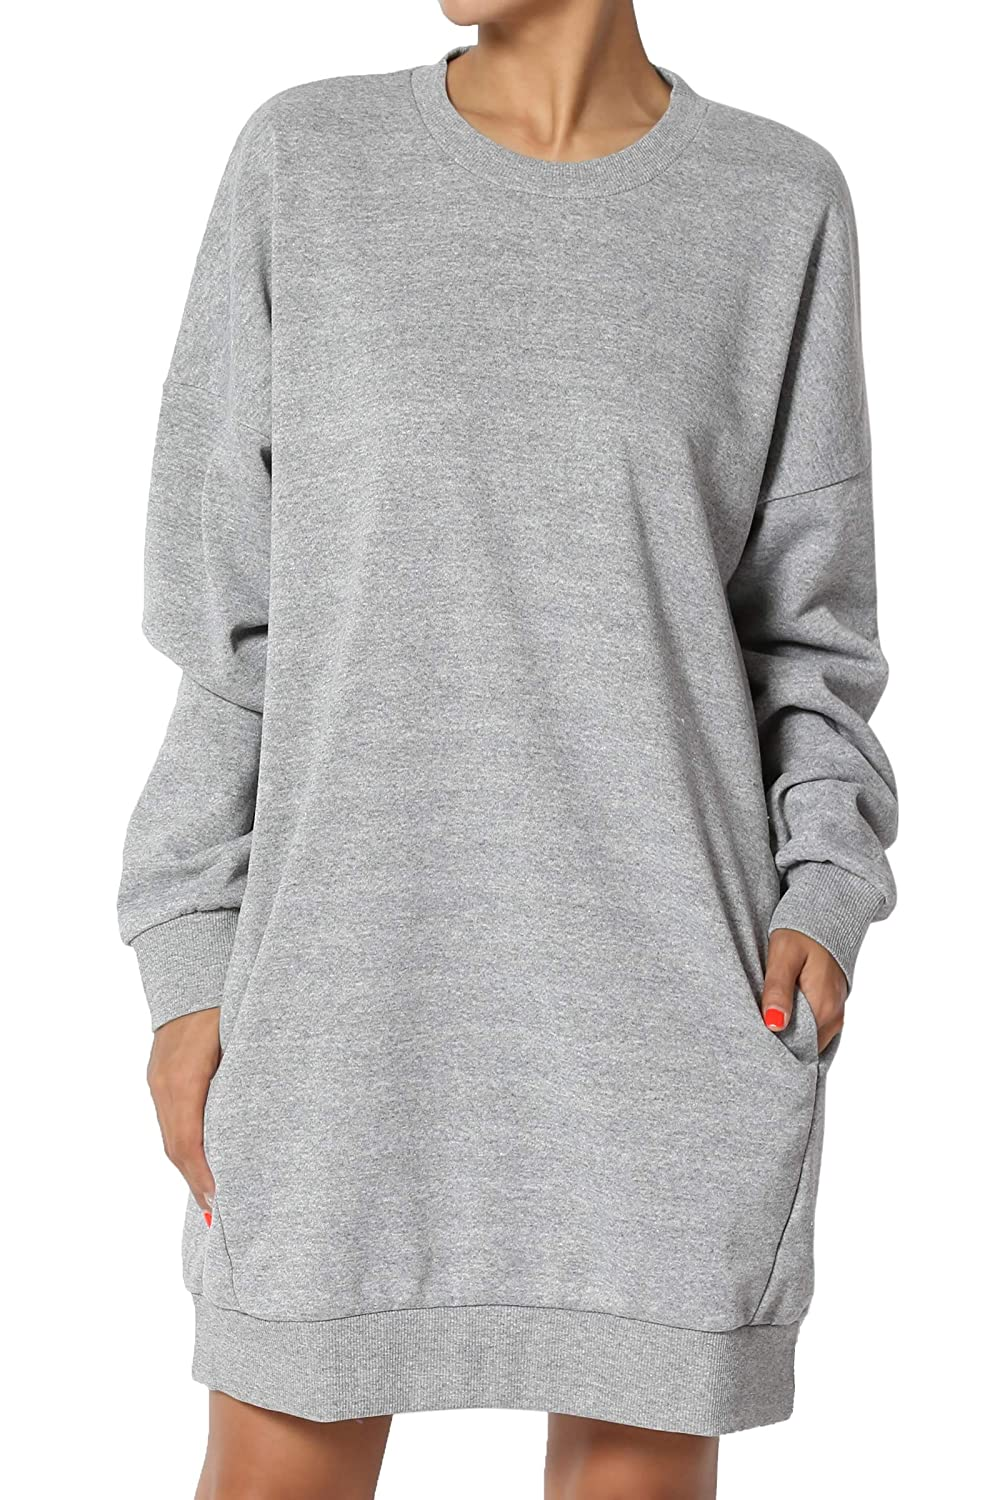 TheMogan Casual Oversized Crew Neck Sweatshirts Loose Fit Pullover Tunic S~3XL